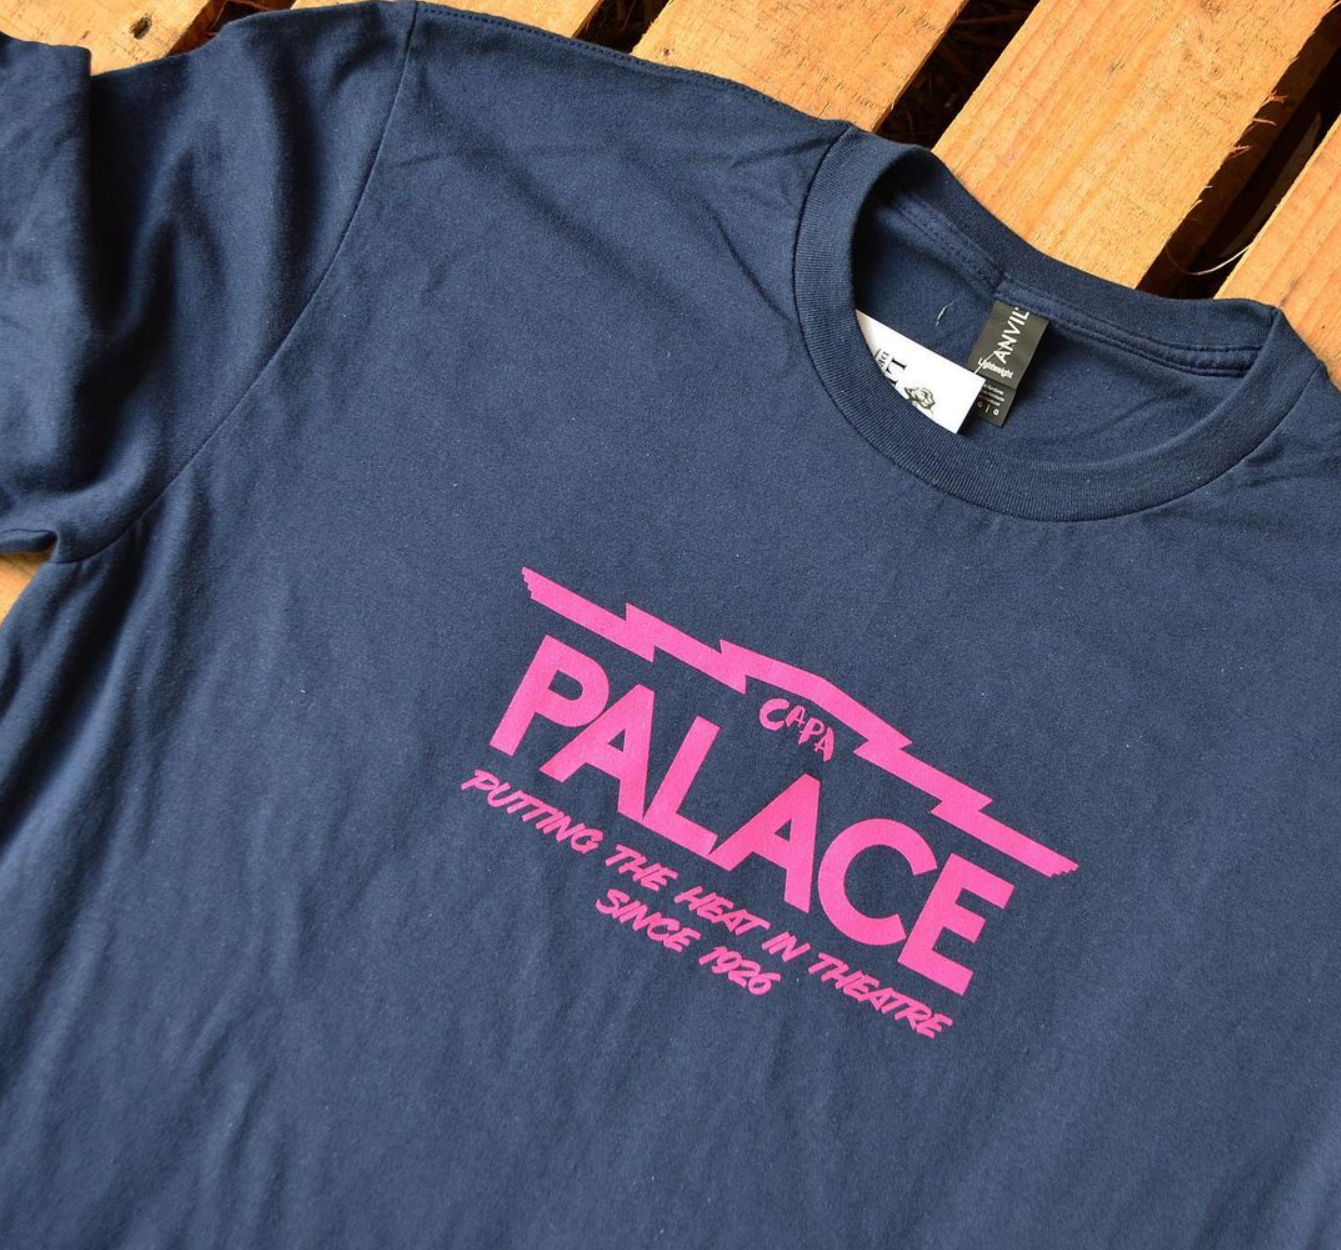 Image of Historic Palace Theatre T-Shirt